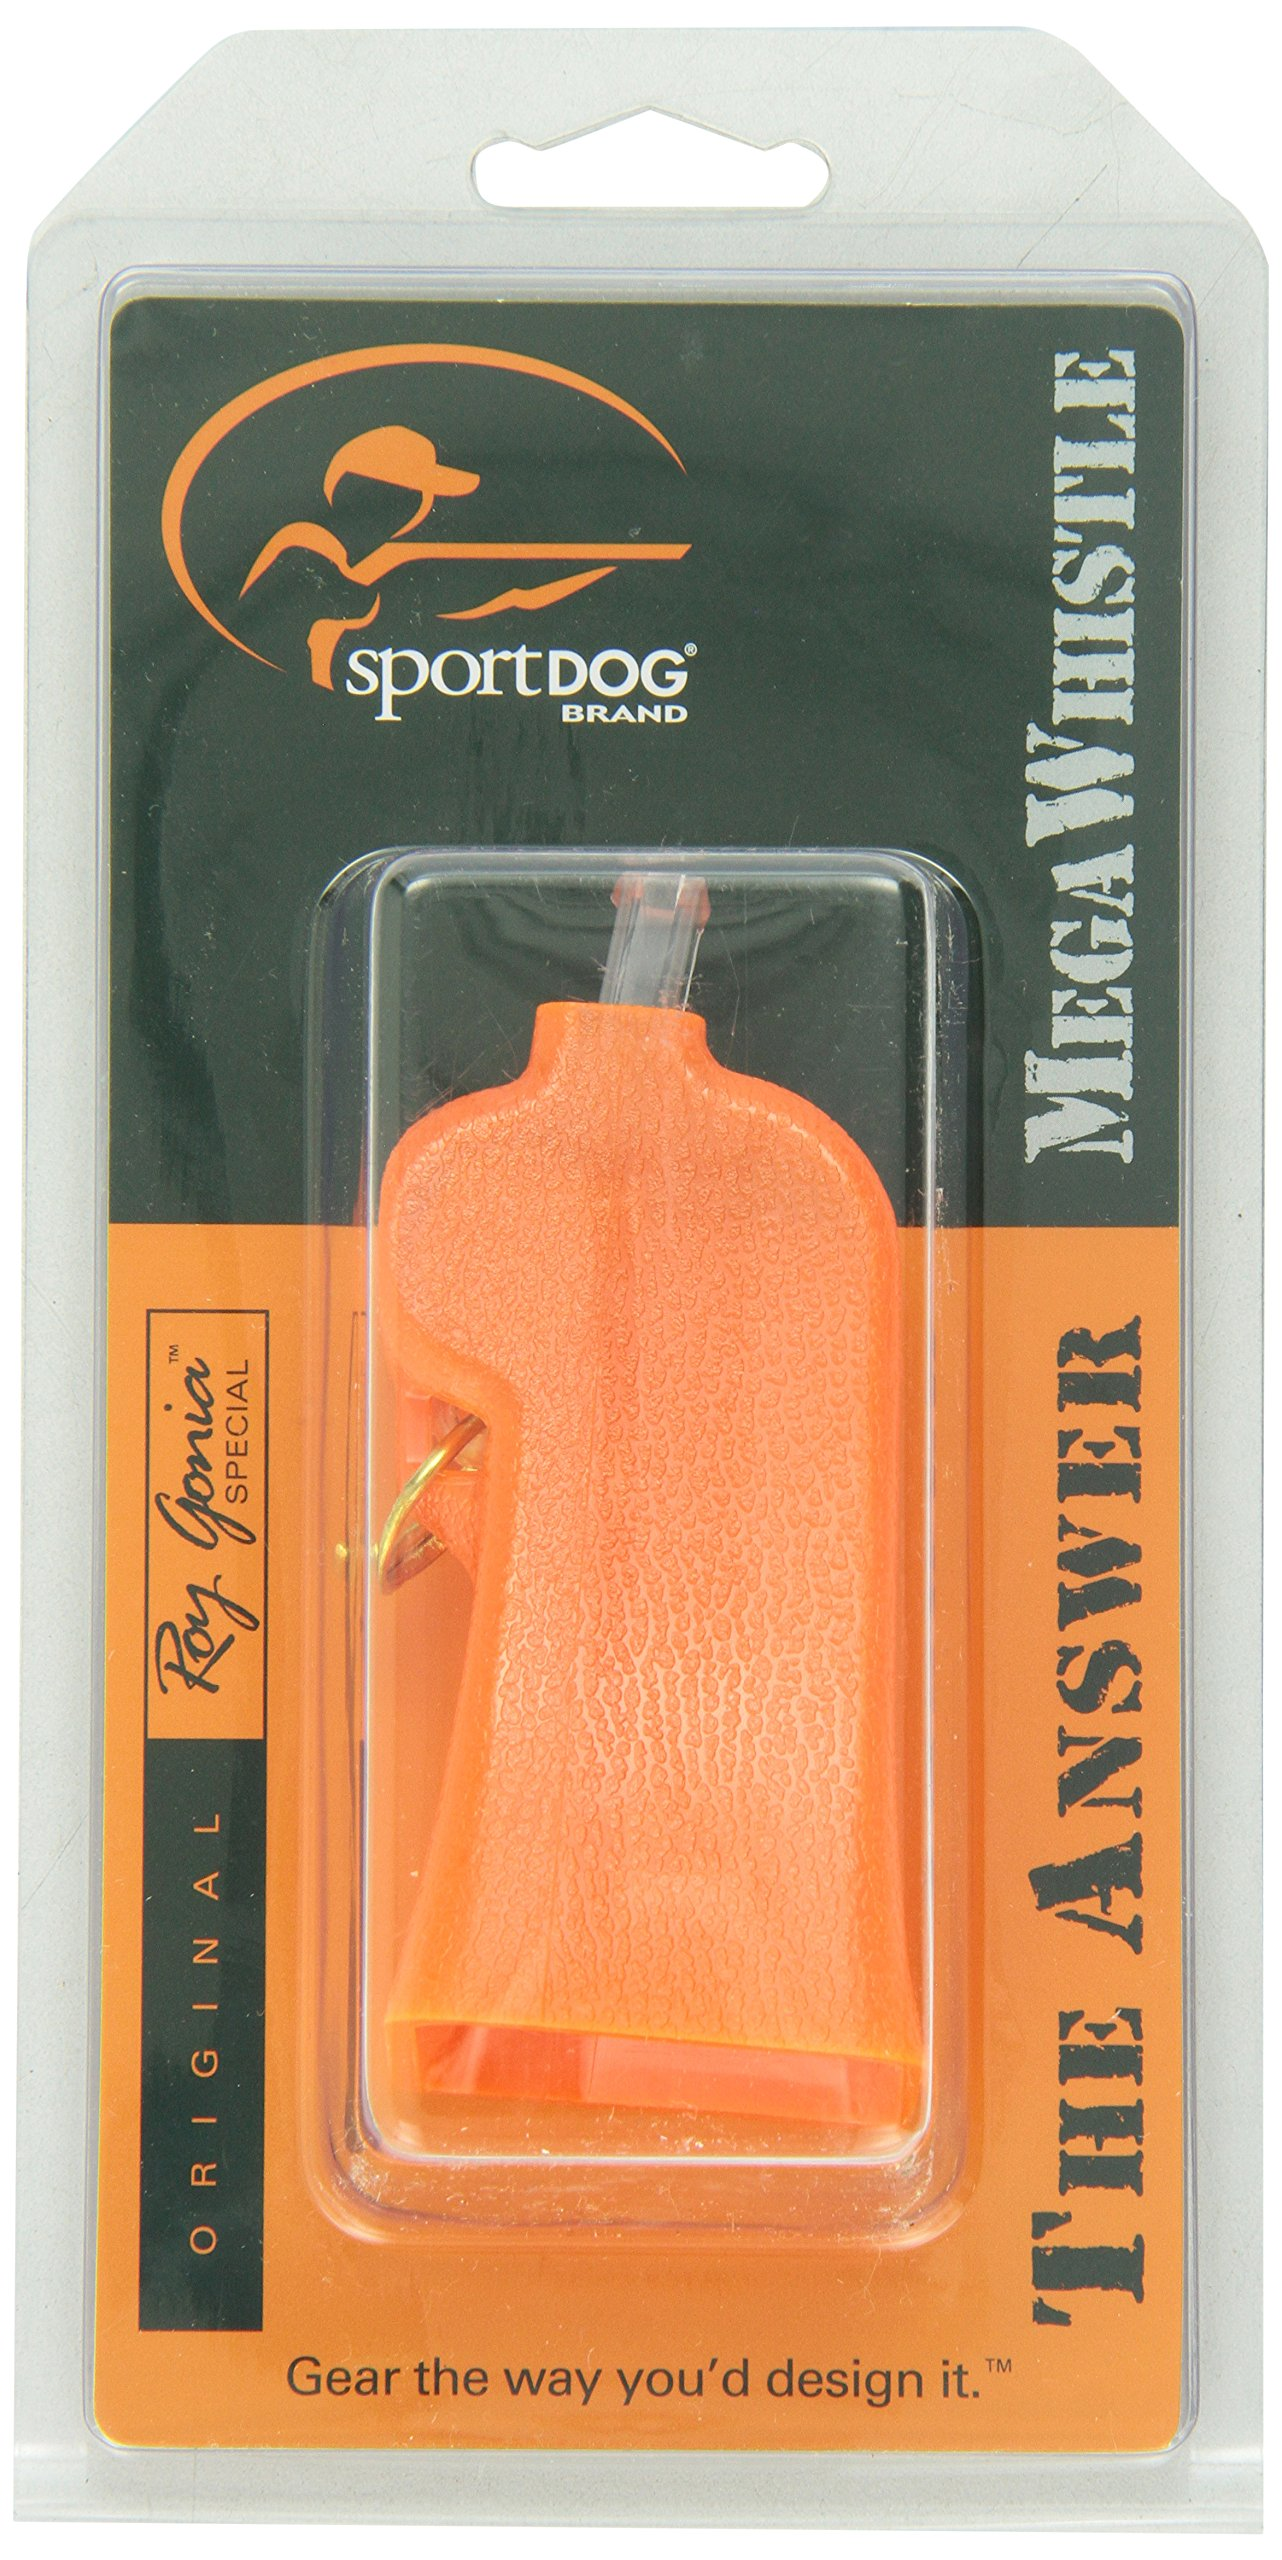 SportDOG Brand Competition Mega Whistle - Hunting Dog Training Whistle with Easy-to-Blow Design - Protects Handlers Ear by SportDOG Brand (Image #2)